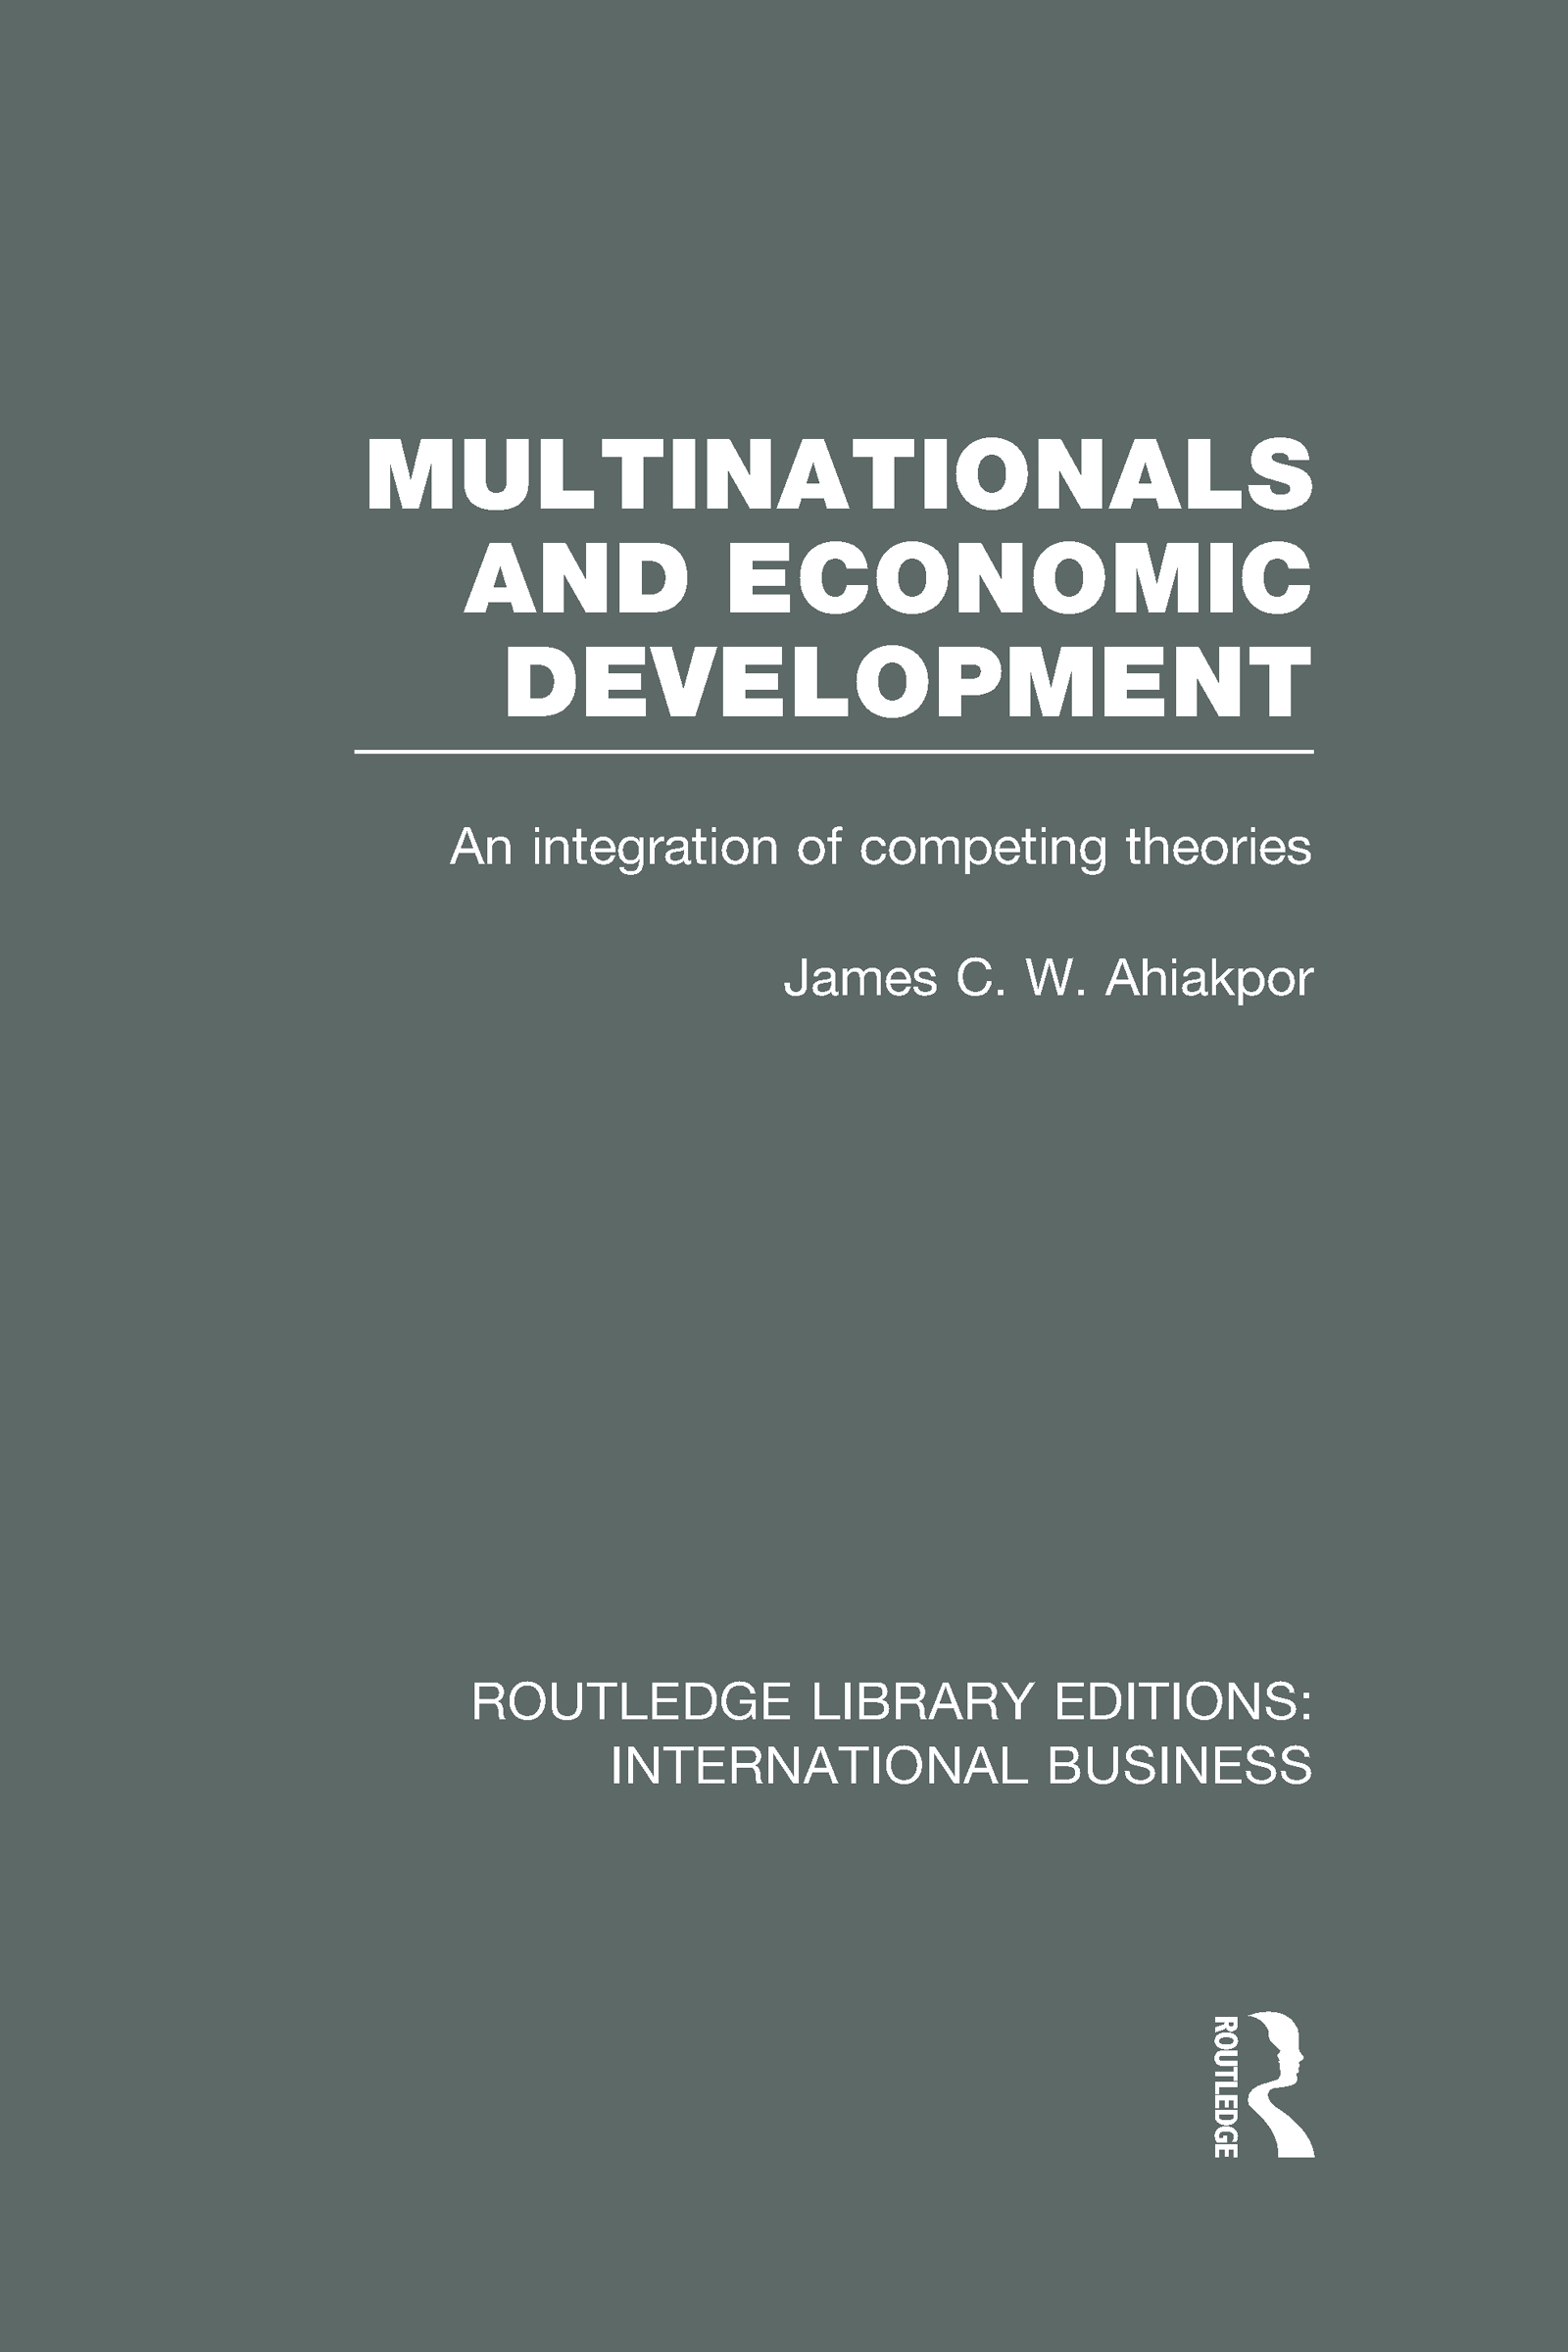 Multinationals and Economic Development (RLE International Business): An Integration of Competing Theories (Hardback) book cover